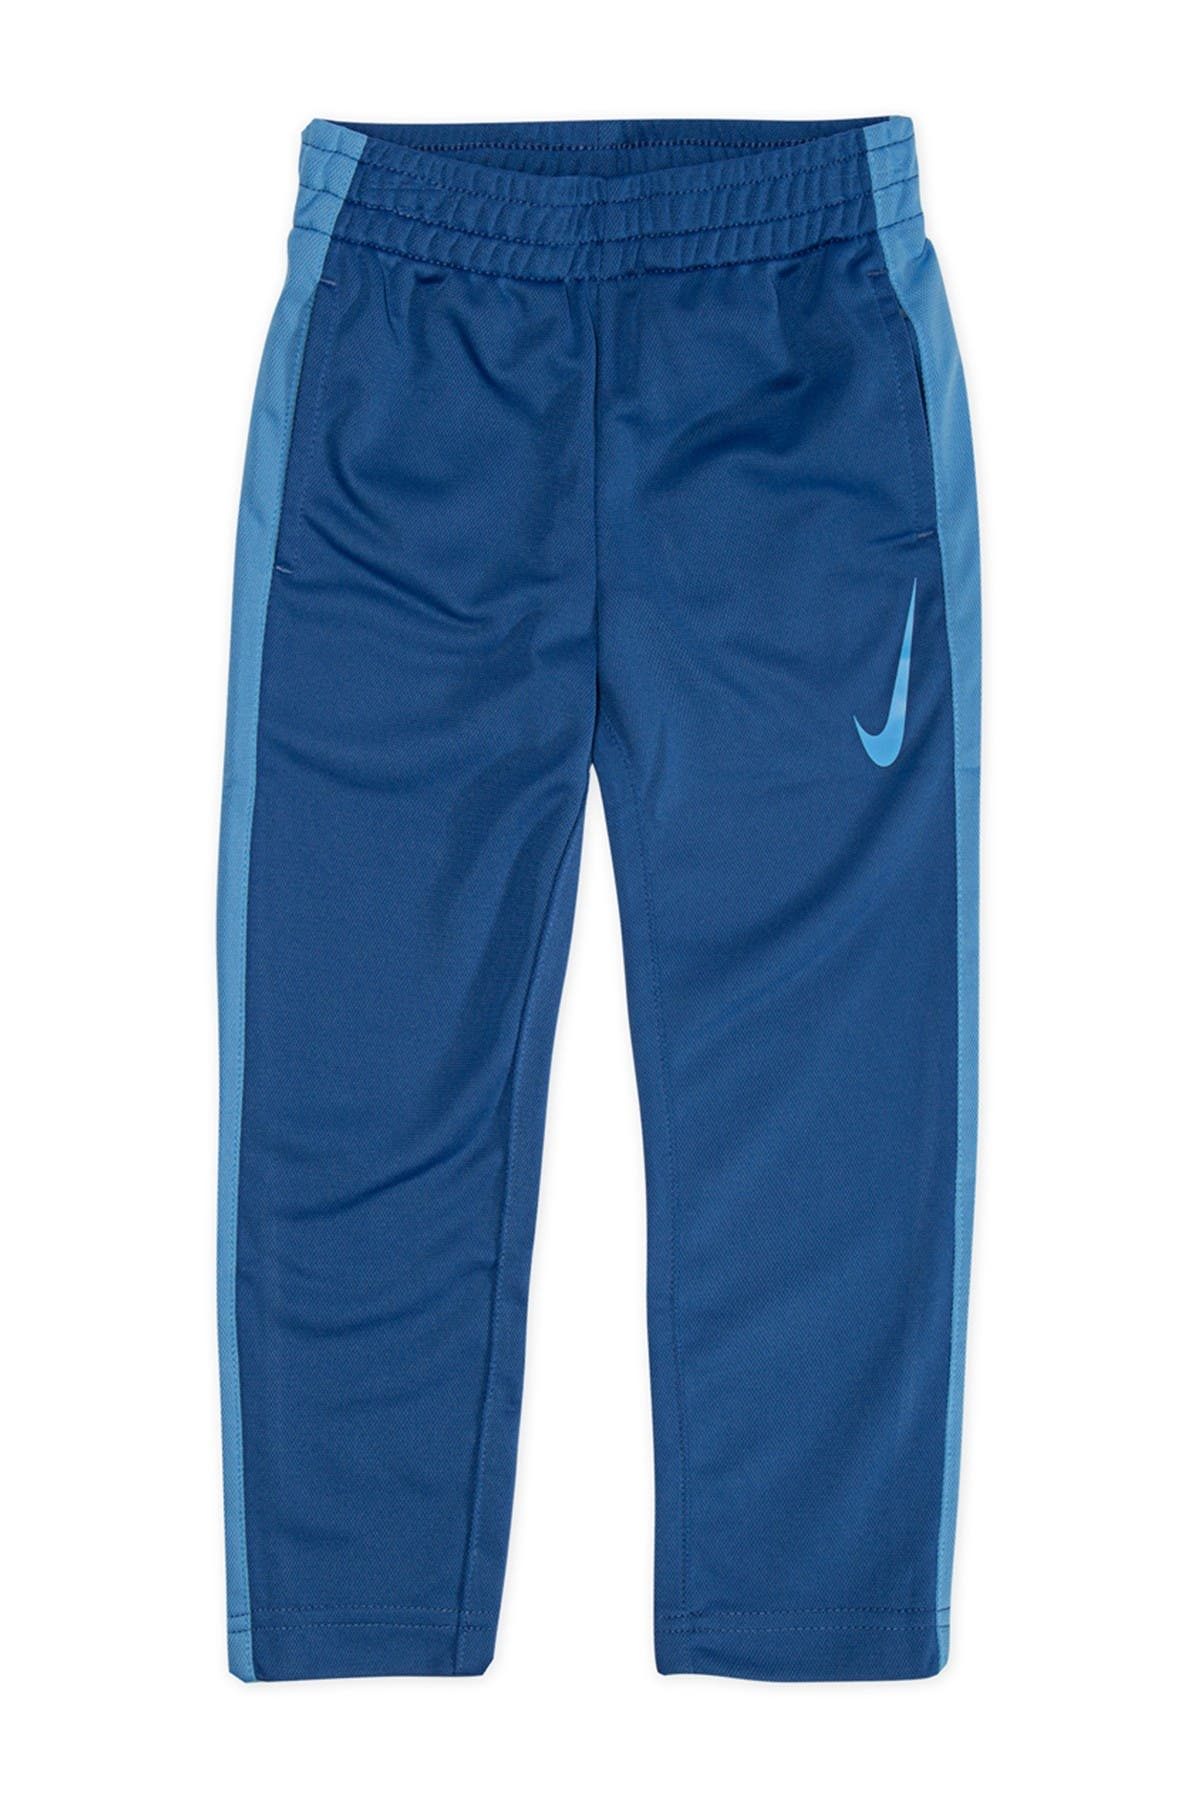 Image of Nike Performance Knit Track Pants